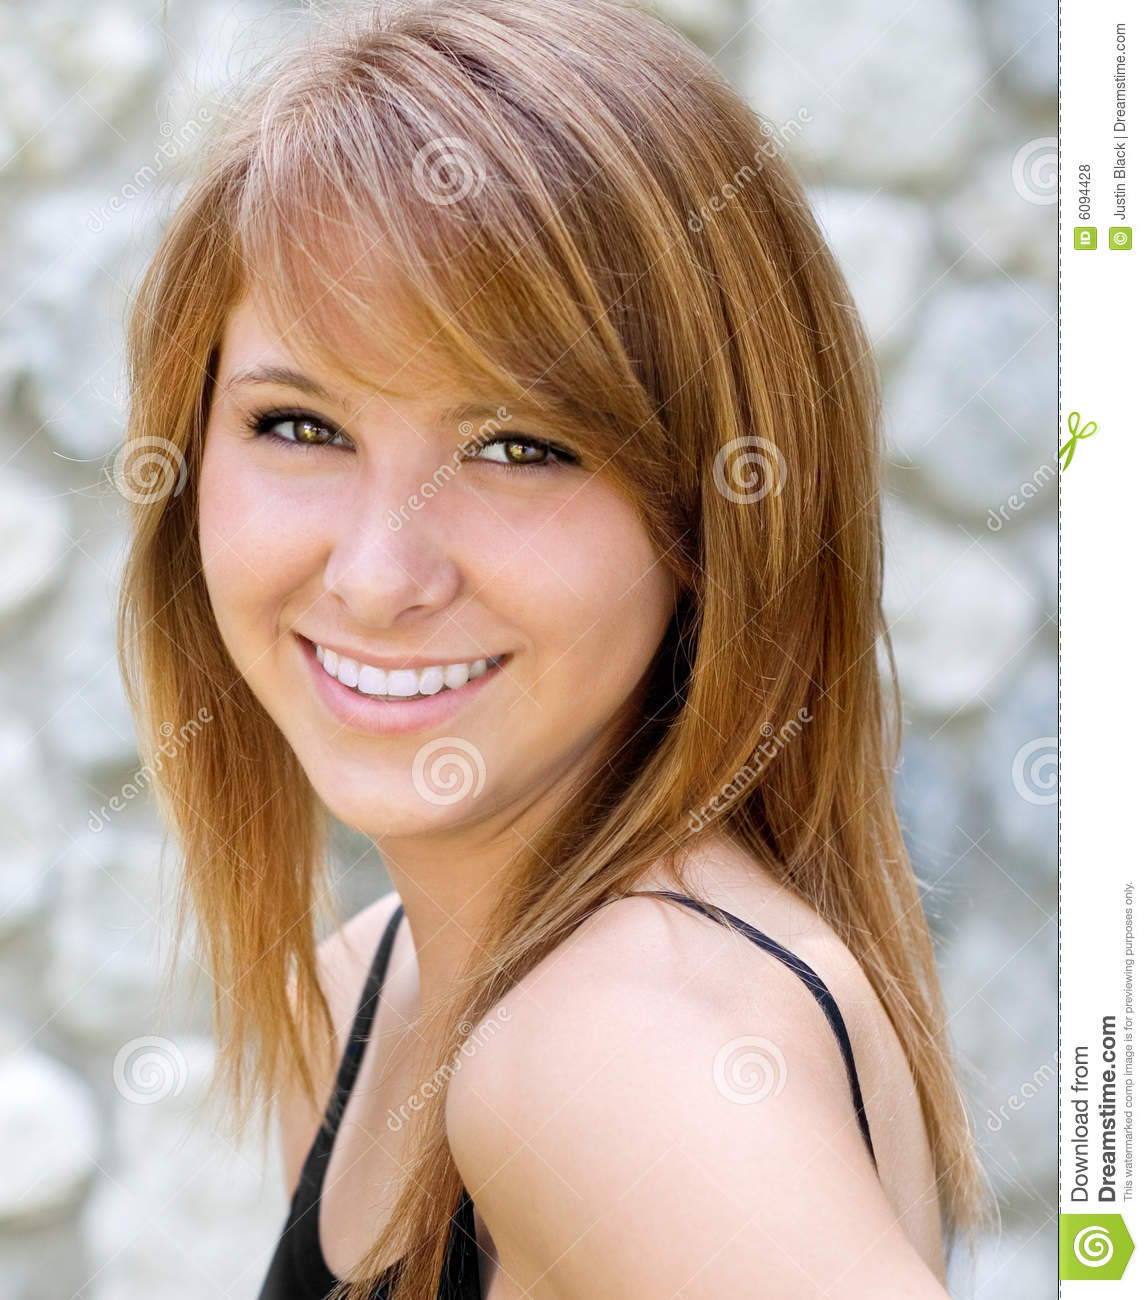 Beautiful Smiling Young Woman Stock Photo - Image of teeth